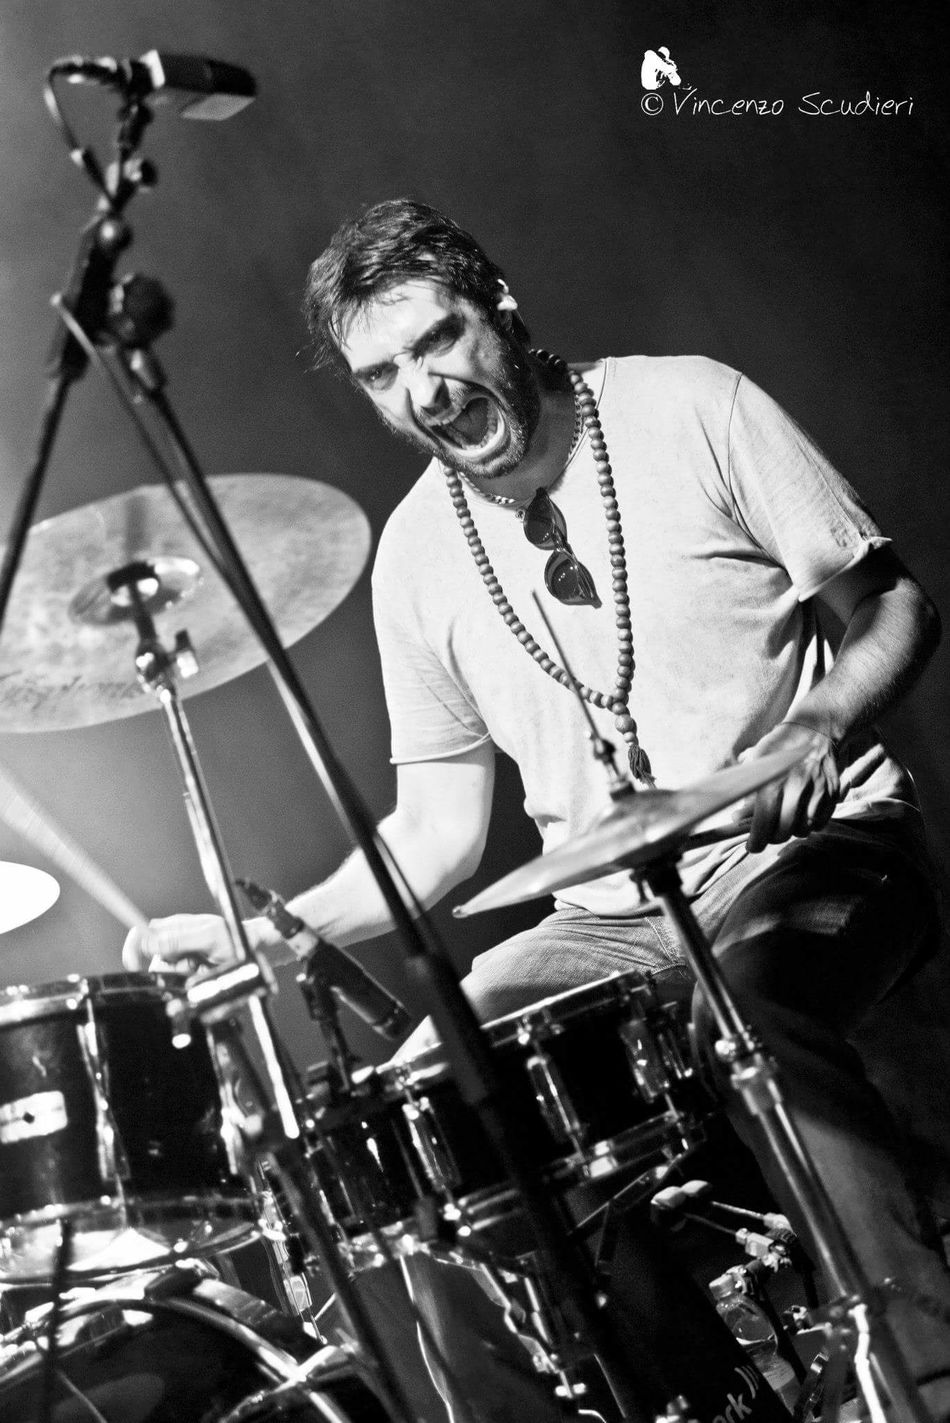 Francesco Caprara Music Brings Us Togheter Vincenzo Scudieri Concertphotography Concert Concert Photography Musical Instrument Blues Black & White Dtums Lifestyles Enjoy Life Funky Music Photography  Rosalino Cellamare